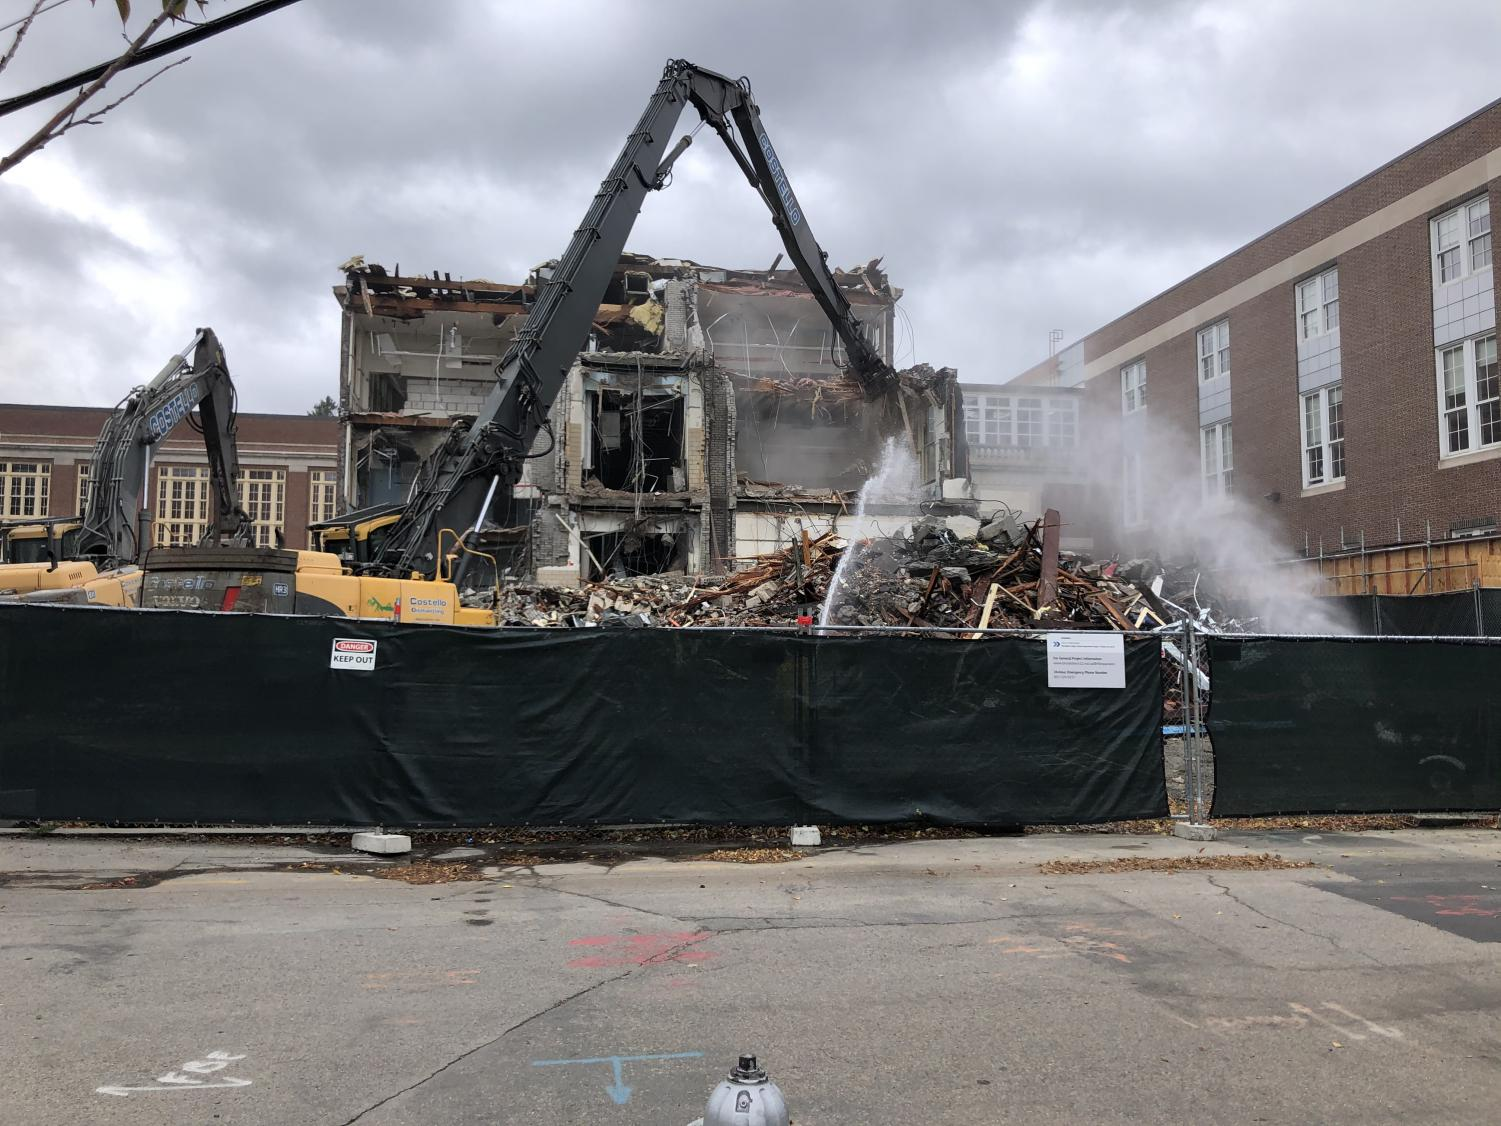 On Oct. 11, a crane took down part of the high school. These renovations have forced sports teams and athletes to adjust to new schedules.